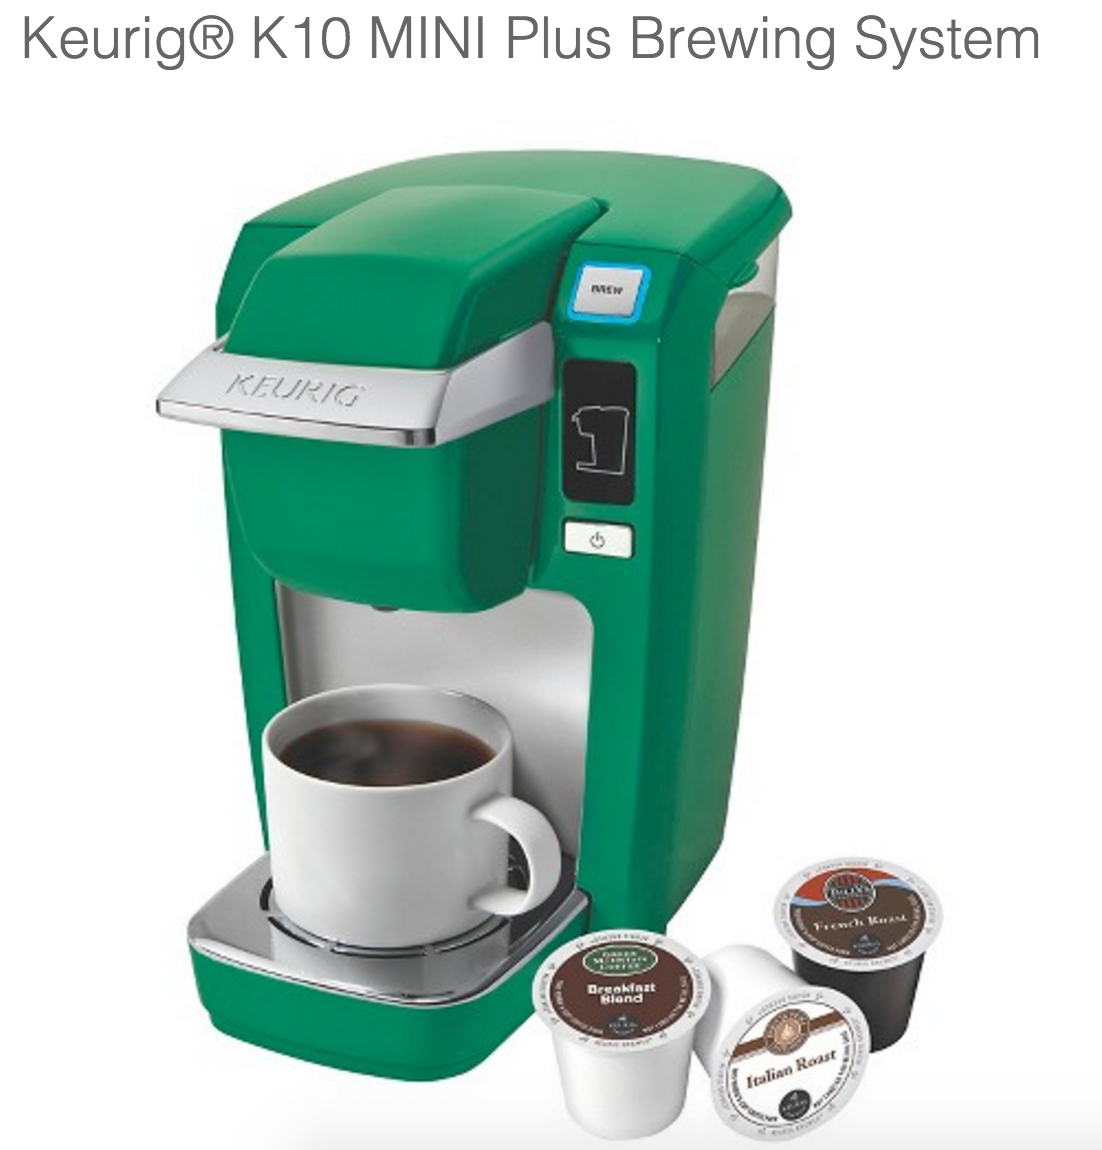 Get fast, free shipping with Amazon PrimeMarkdowns· Deals in Home & Kitchen· Shop Best Sellers· Fast ShippingBrands: Keurig, Cuisinart, Mr. Coffee, Hamilton Beach, Starbucks, NIFTY and more.